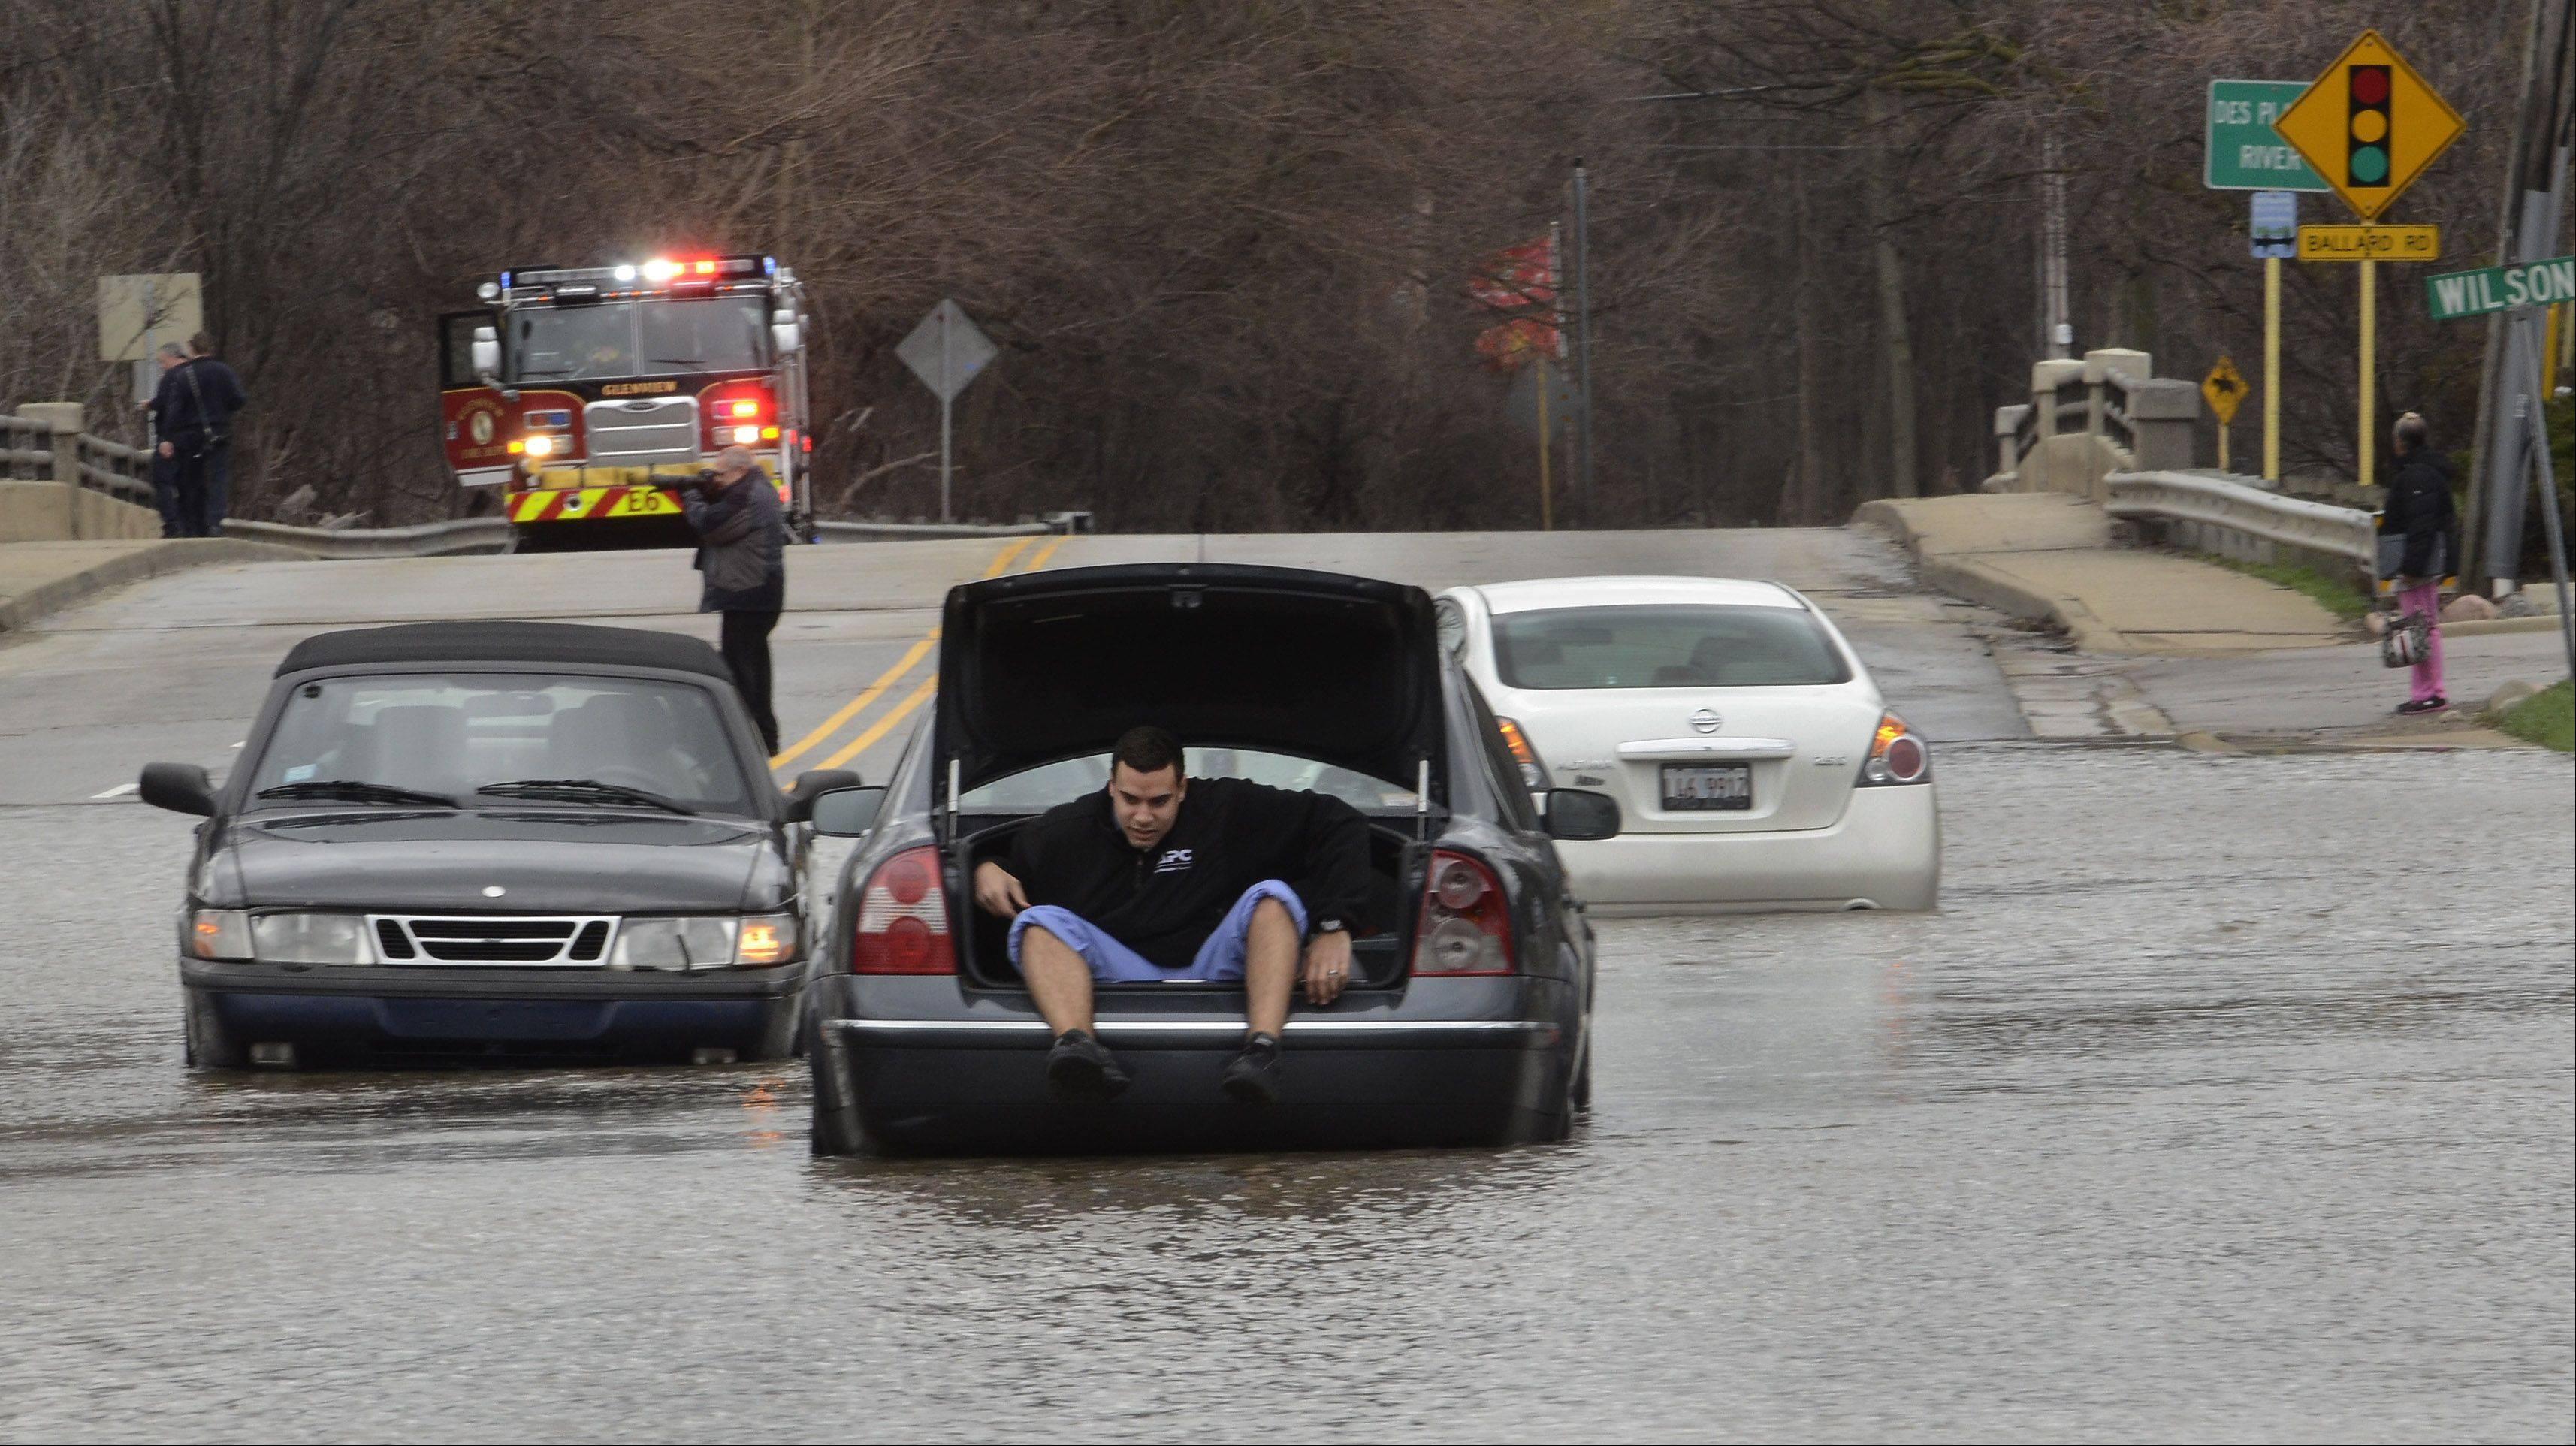 Efrain Baez of Des Plaines crawls out the trunk of his Volkswagen after getting stuck in the flooded intersection of Rand and Wilson in Des Plaines.